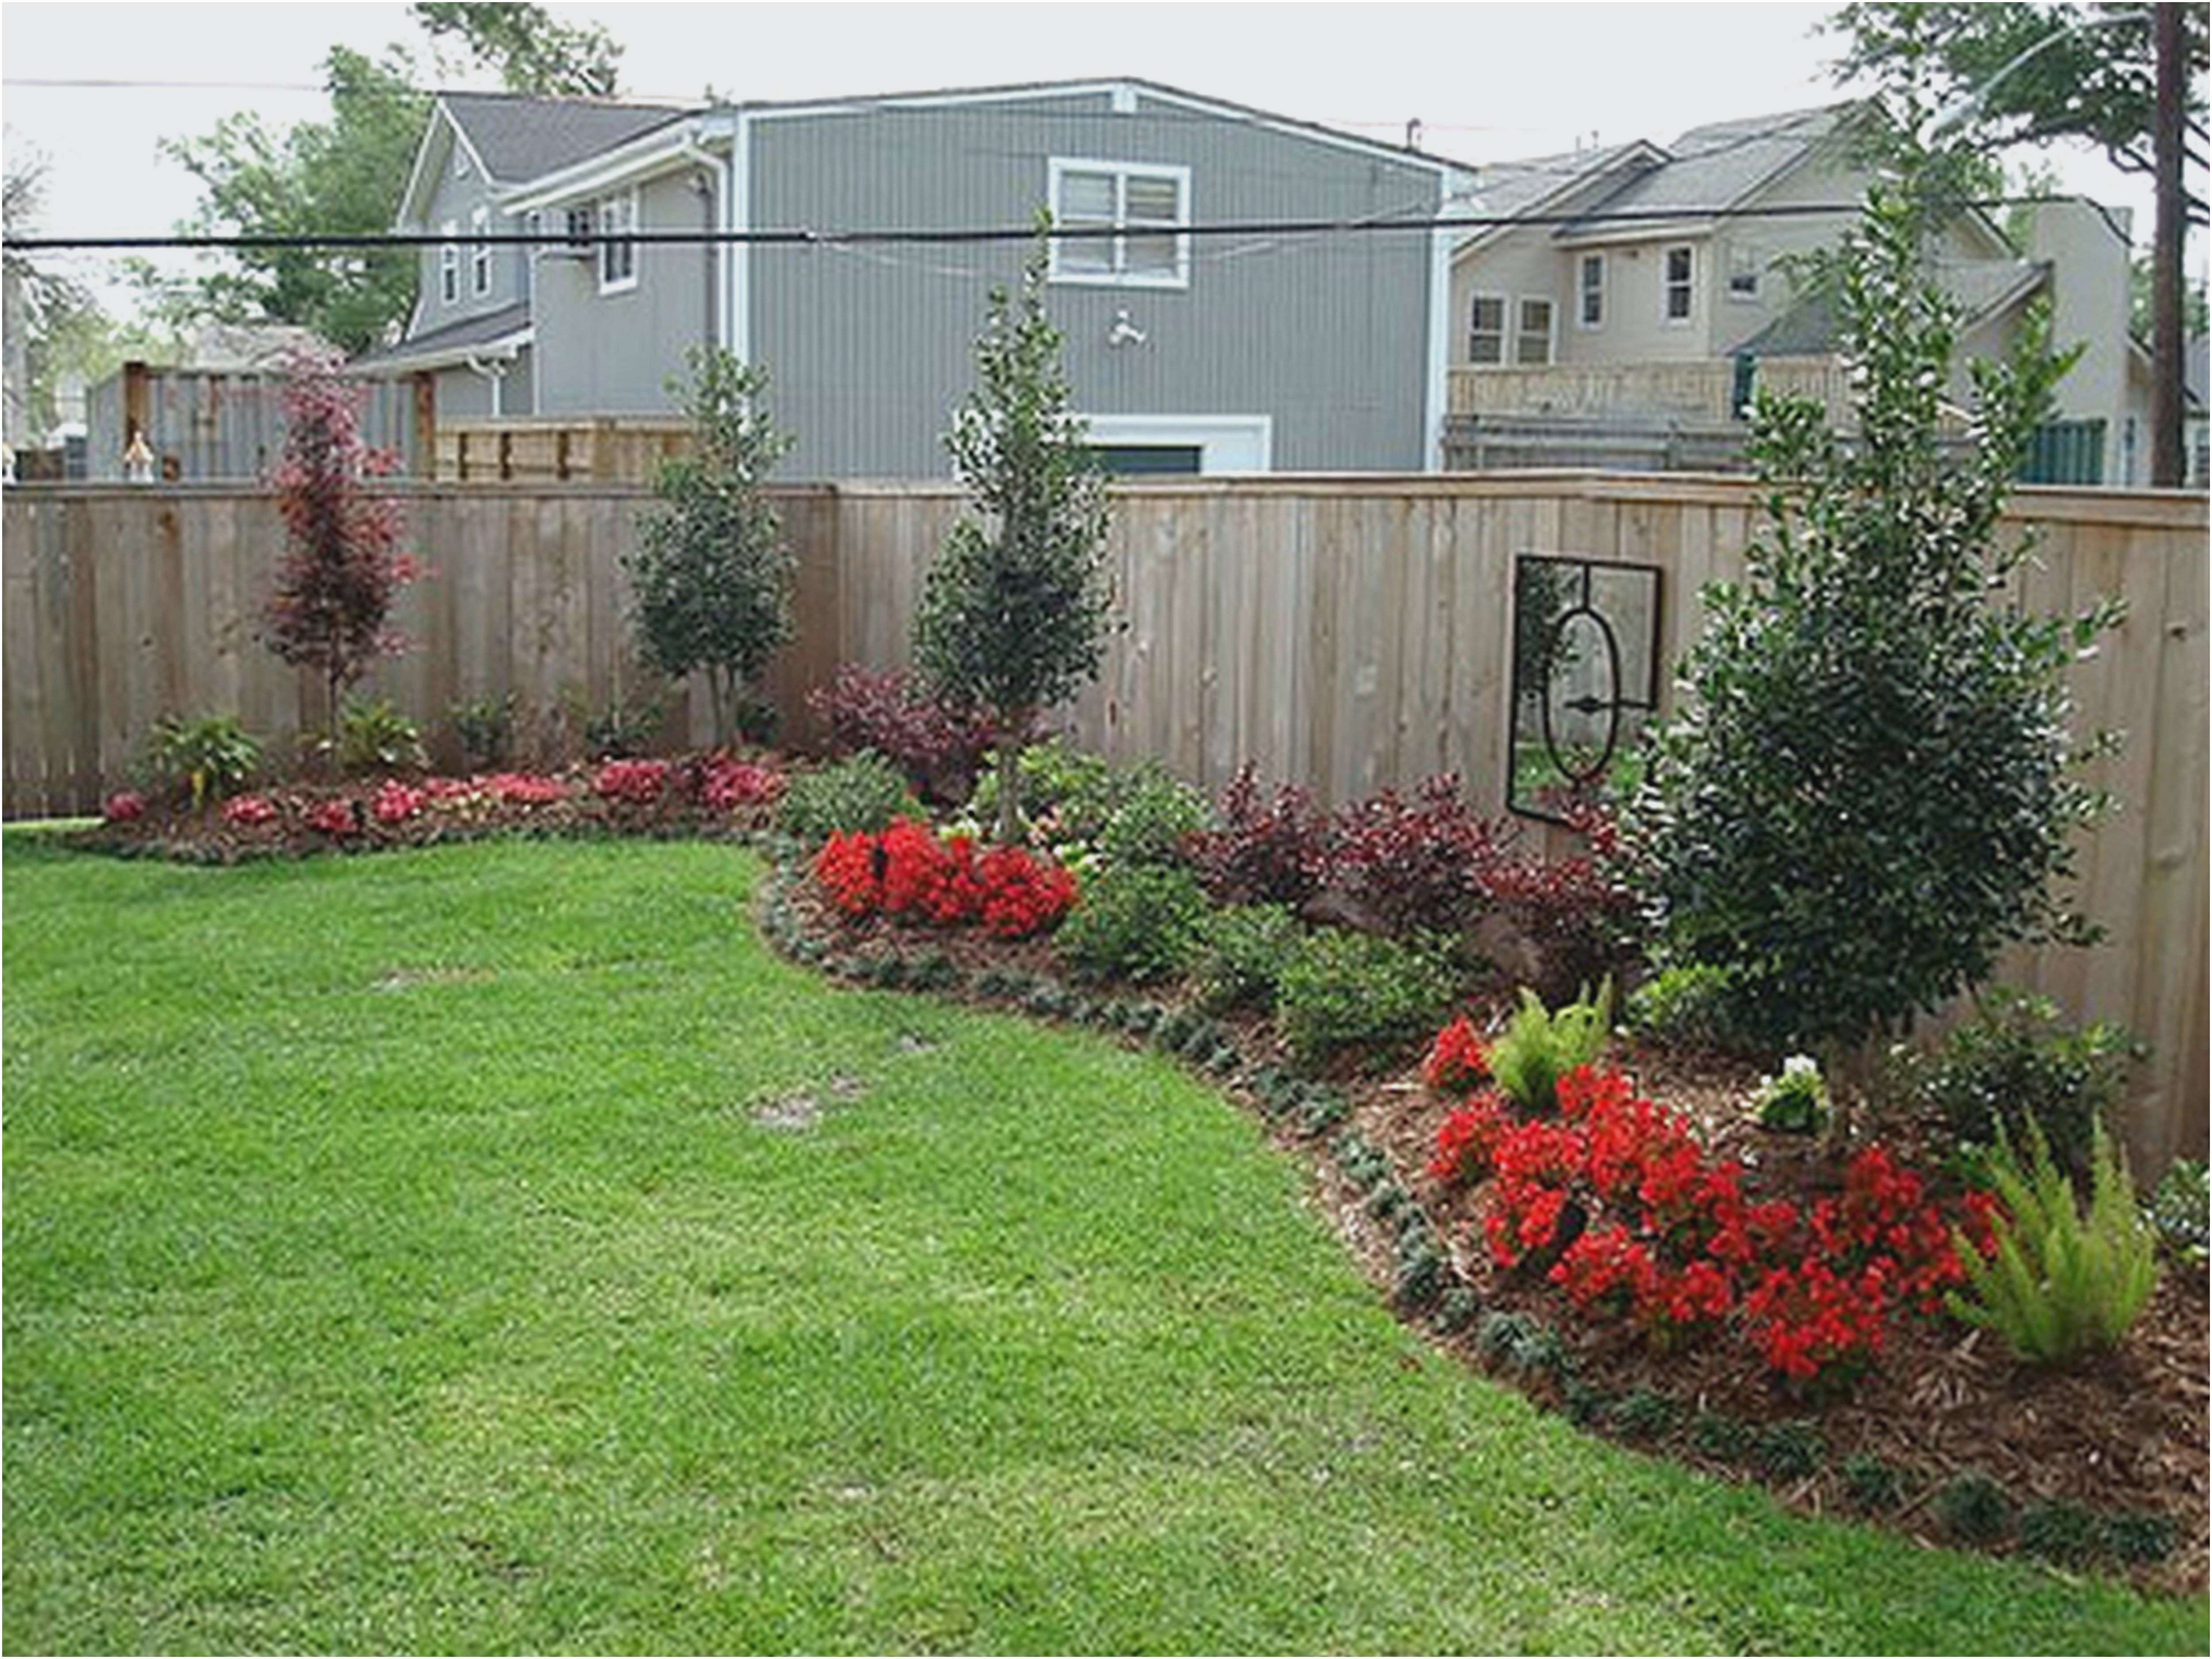 24 marvelous simple backyard landscaping ideas on a budget on backyard landscaping ideas with minimum budget id=65654